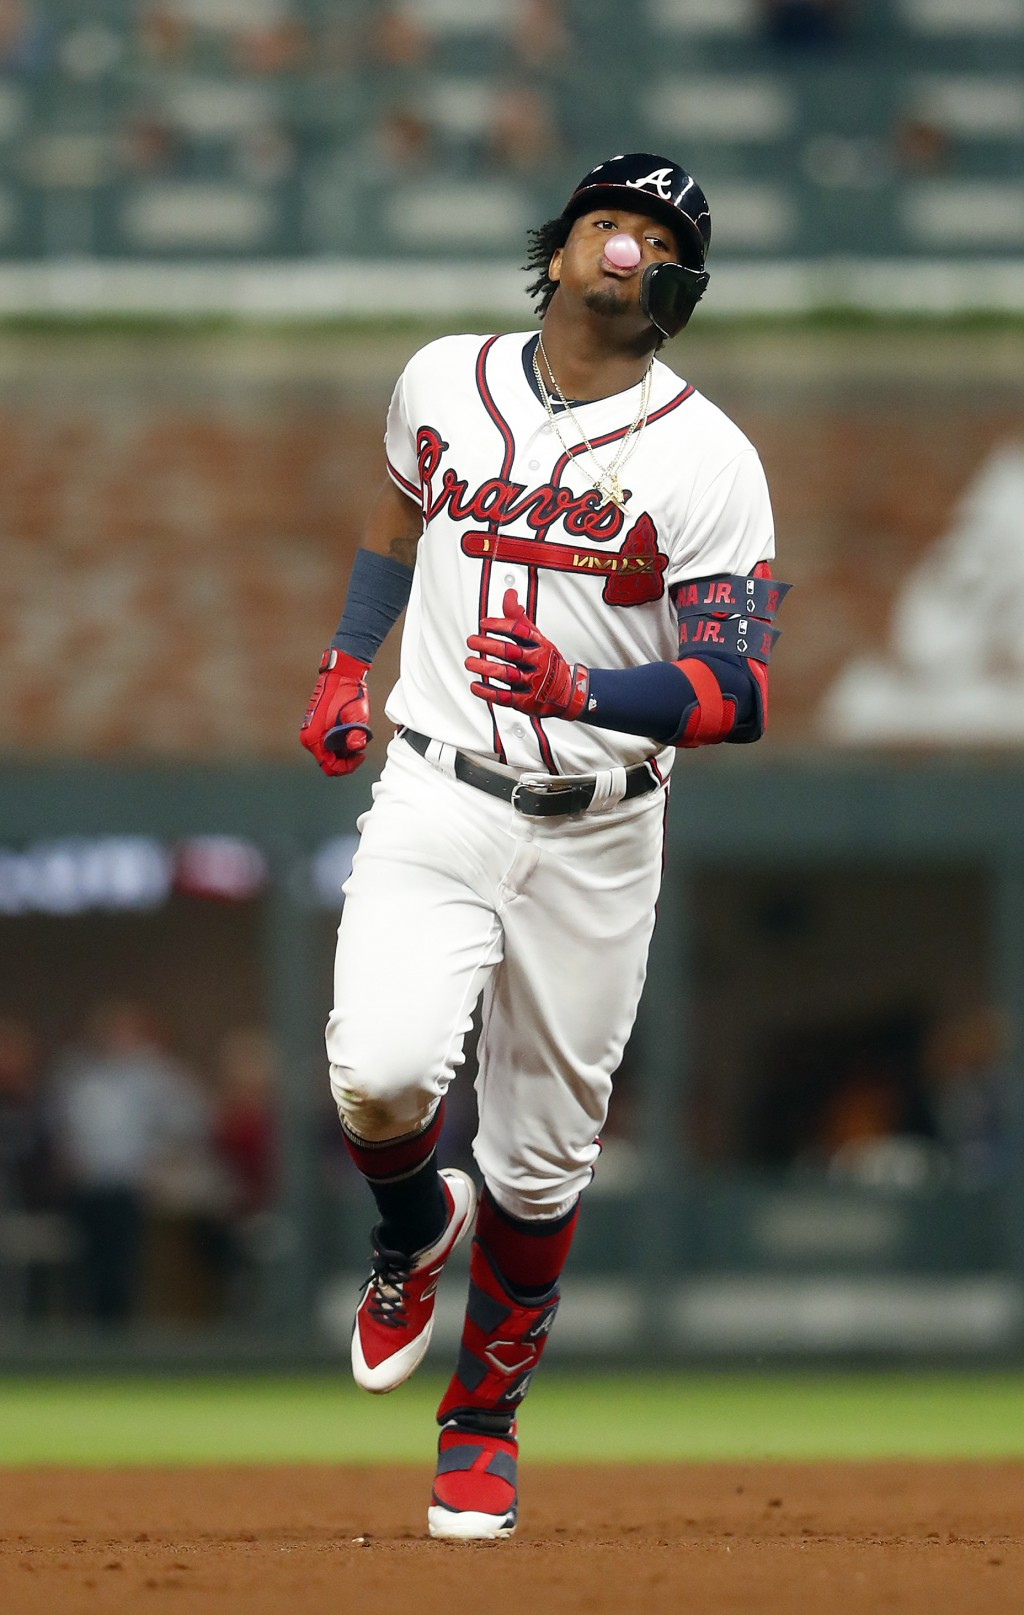 Atlanta Braves' Ronald Acuna Jr. (13) blows a bubble as he rounds the bases after hitting a solo home run in the fourth inning of a baseball game agai...